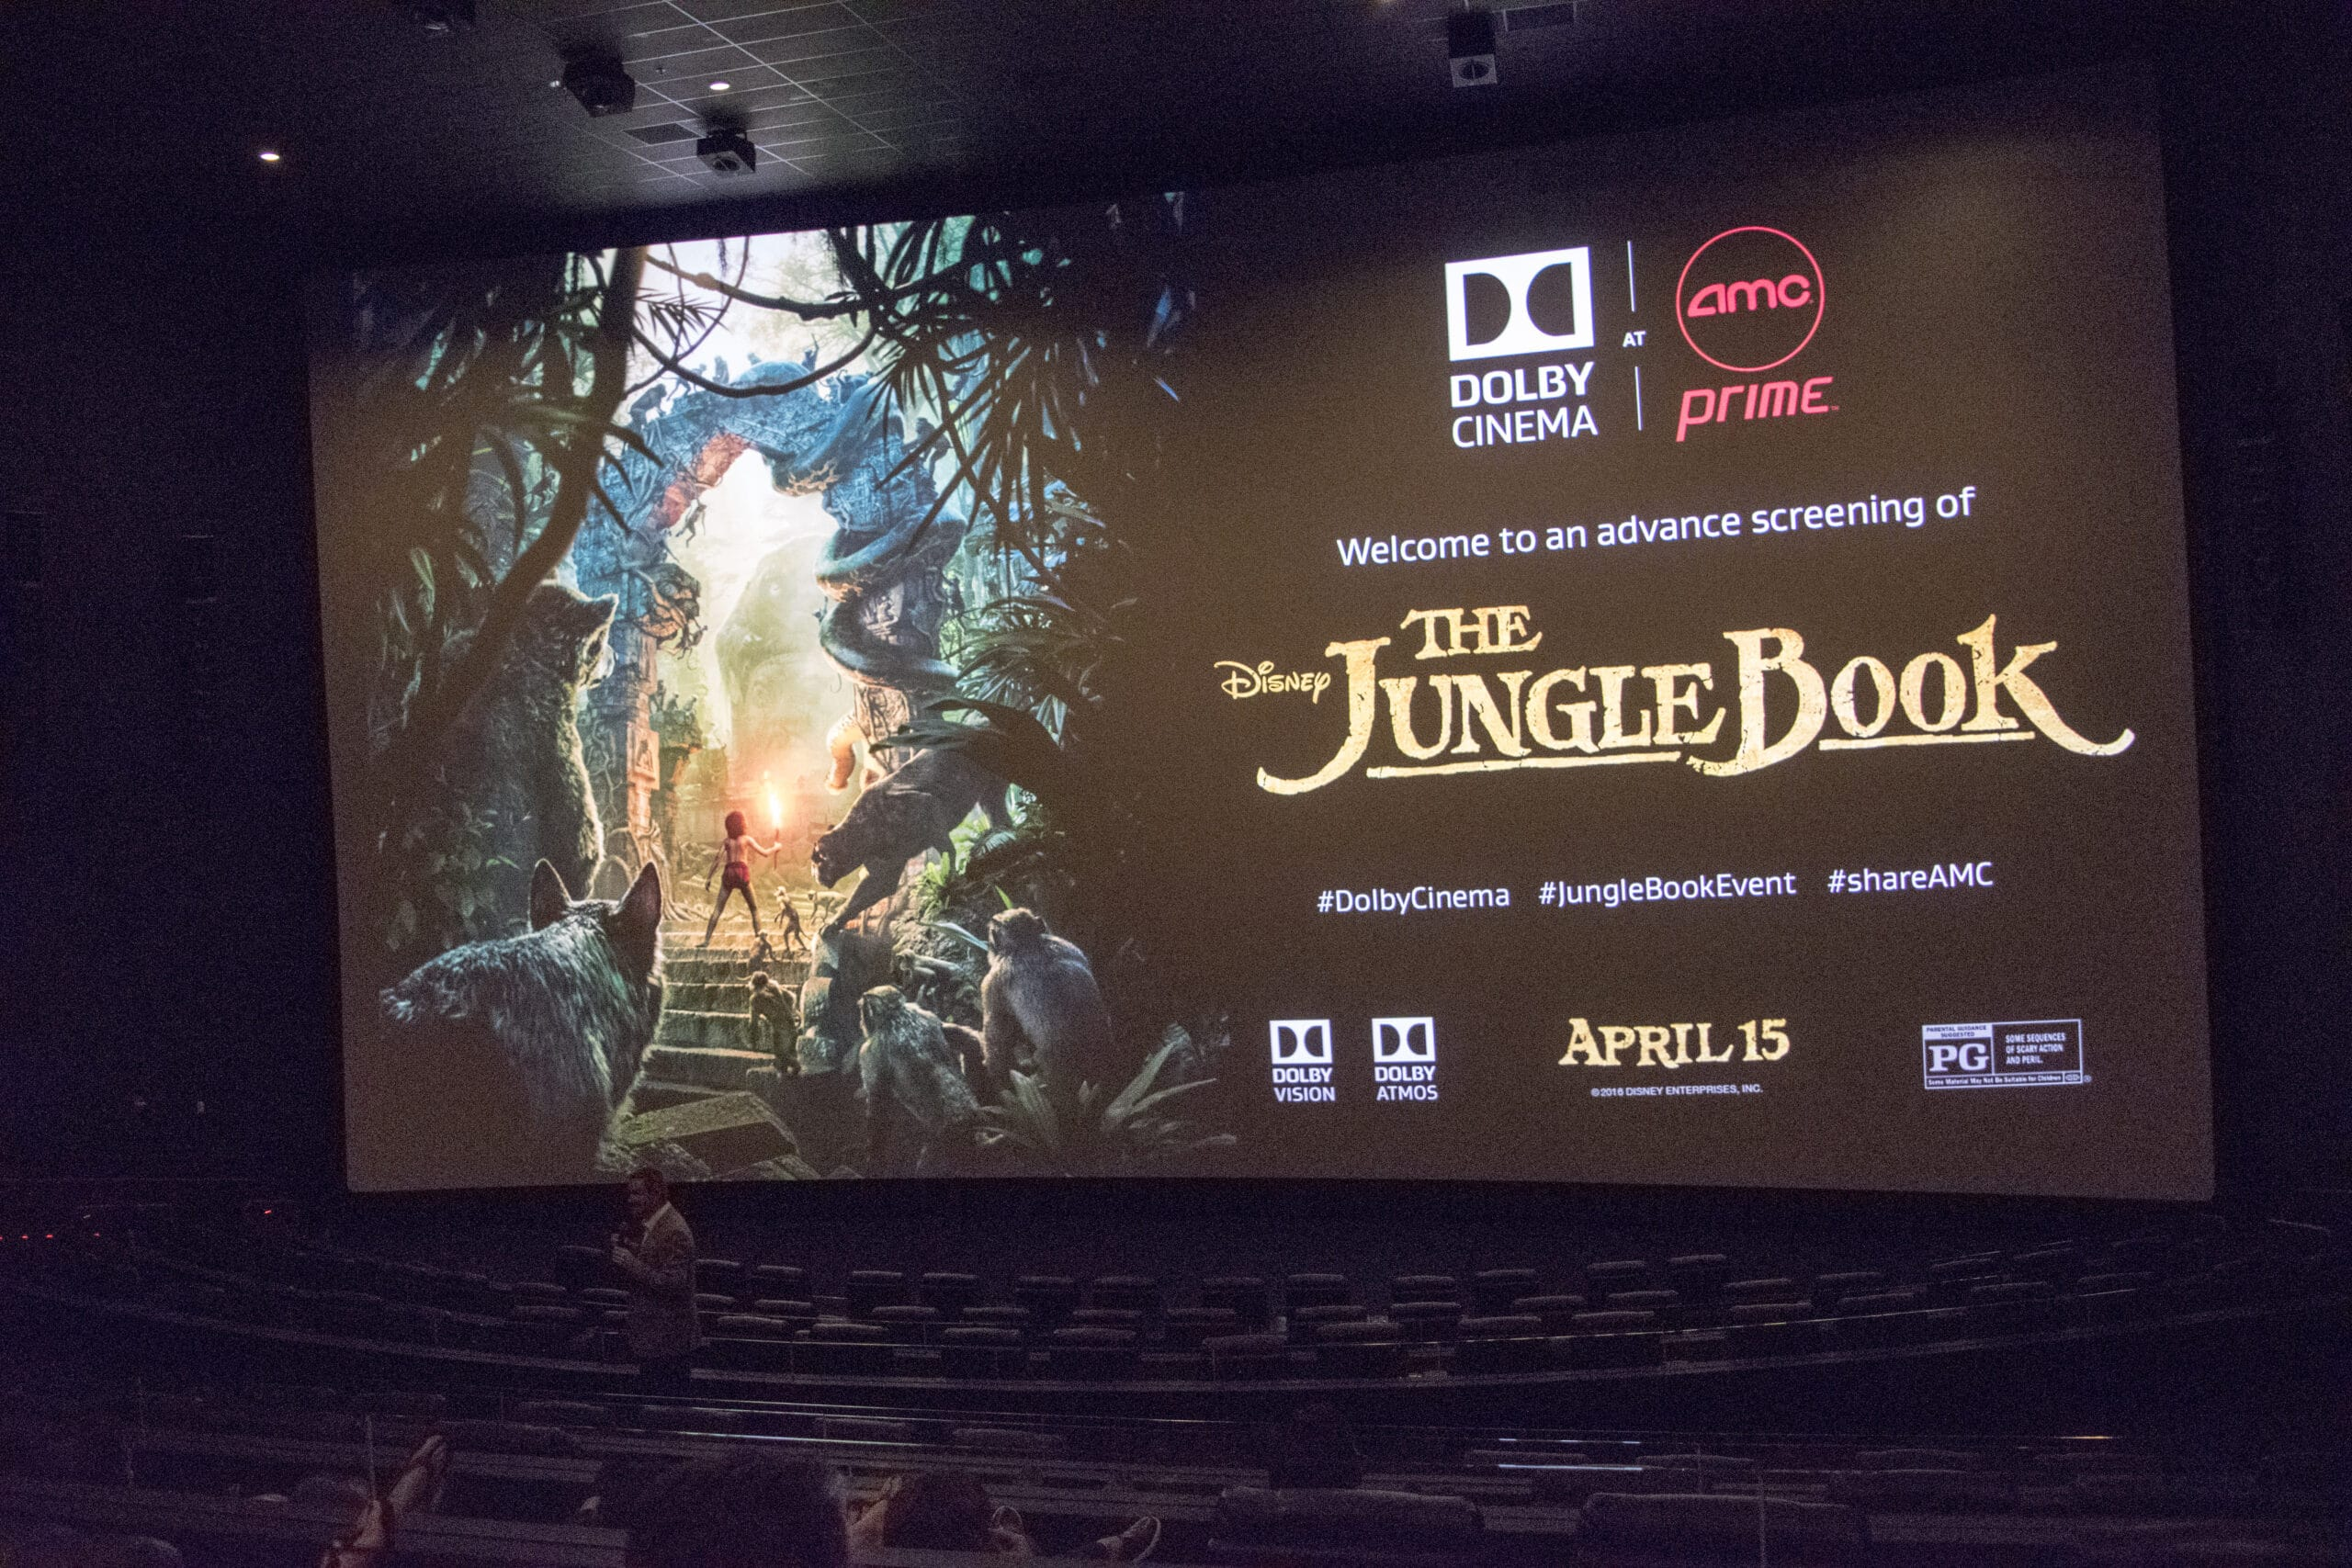 For a limited time, you can catch Disney's The Jungle Book in Dolby Cinema at AMC Prime. Read my full movie review along with reasons why you should experience The Jungle Book in an AMC Prime theater near you.